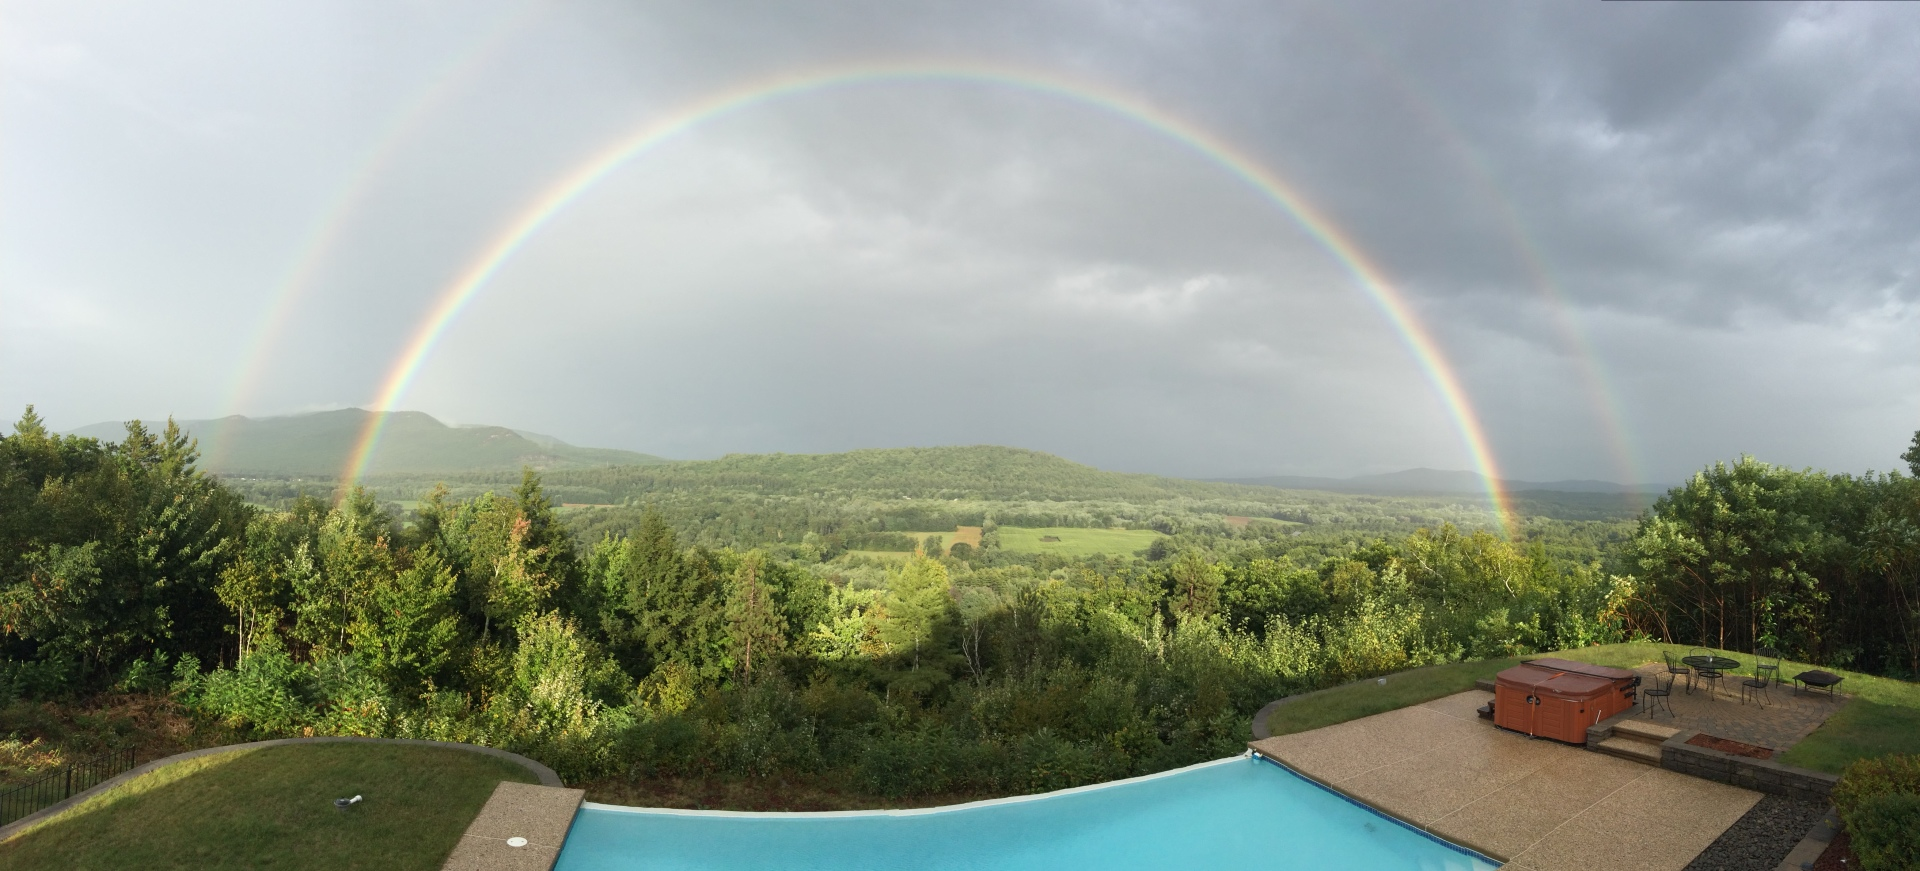 Infinity pool and double rainbow